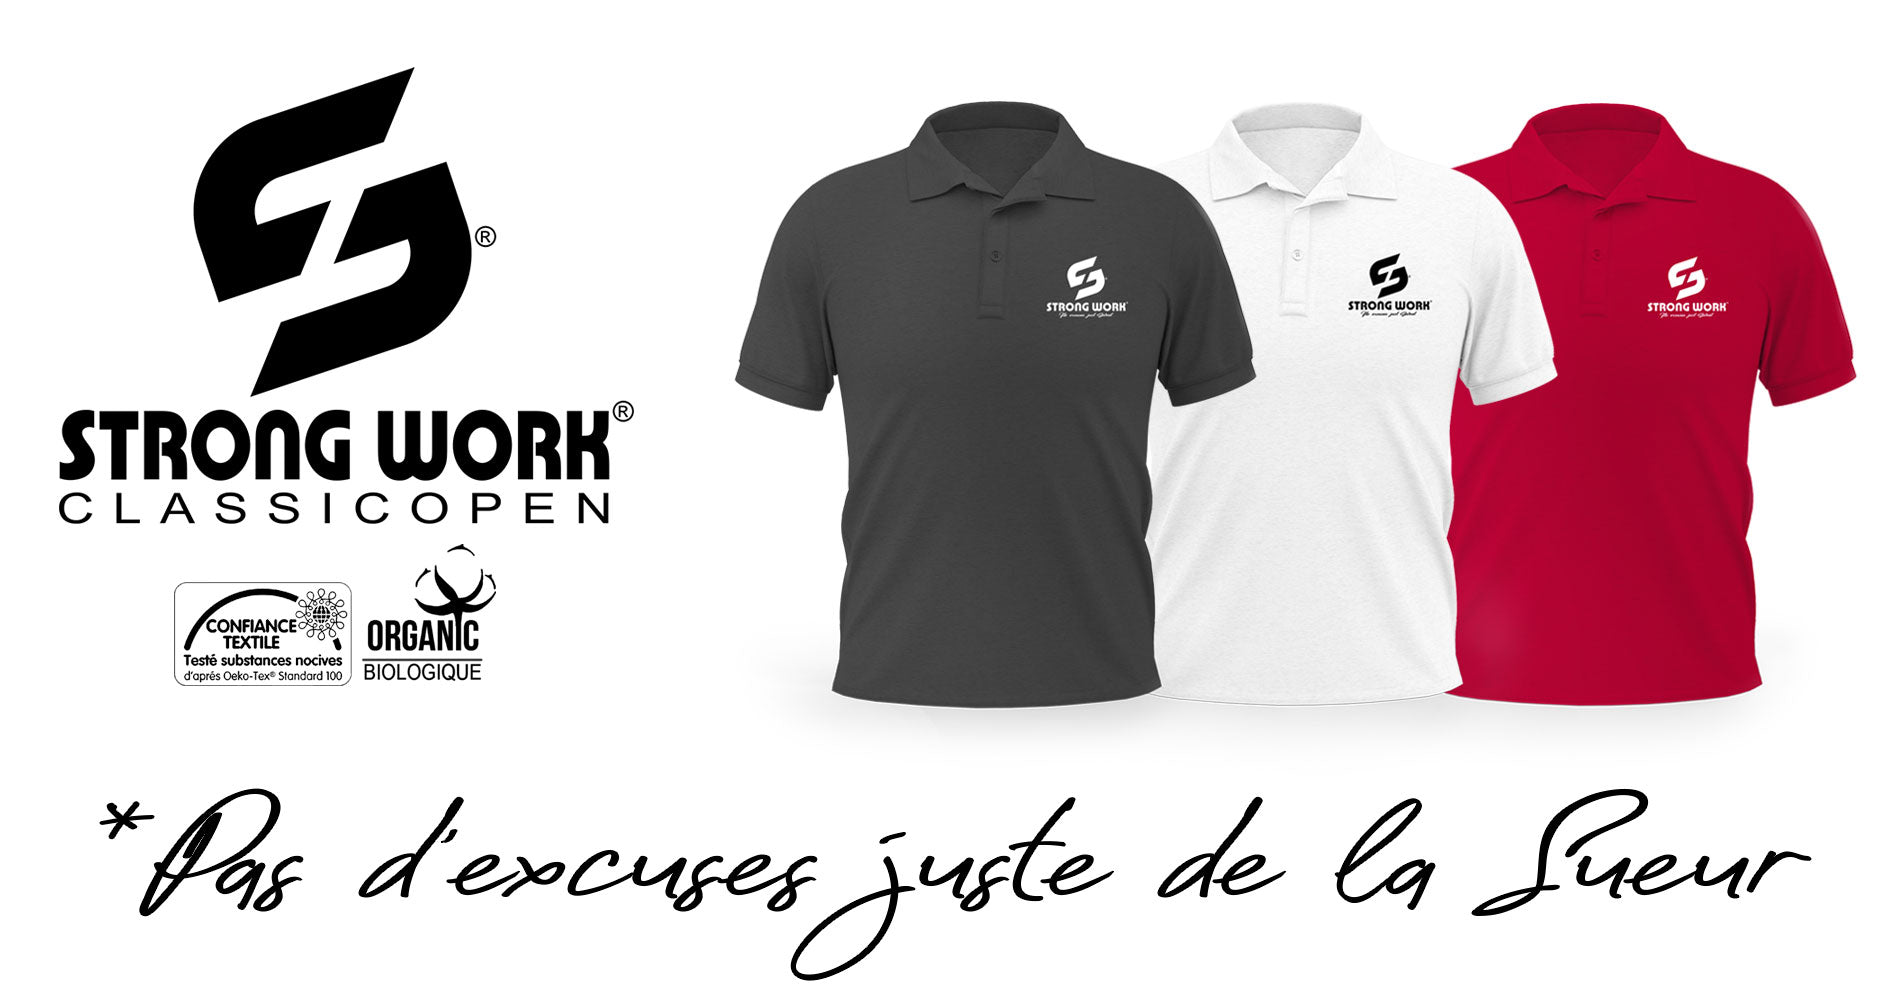 POLO HOMME STRONG WORK CLASSIC OPEN